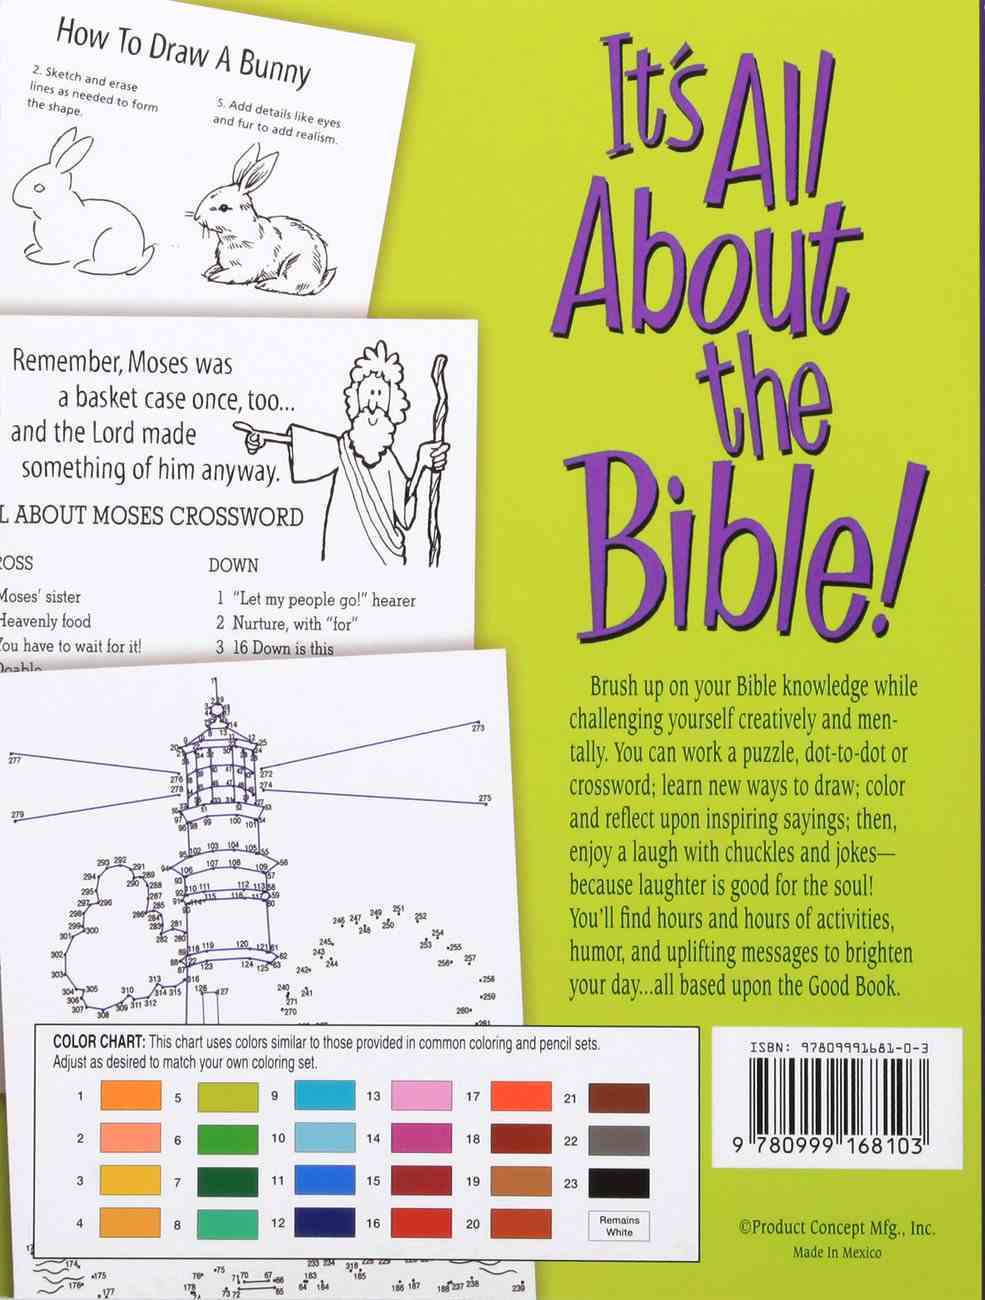 It's All About the Bible!: Puzzles, Fun Facts, Coloring, How-To-Draw, Dot-To-Dot, & More Paperback